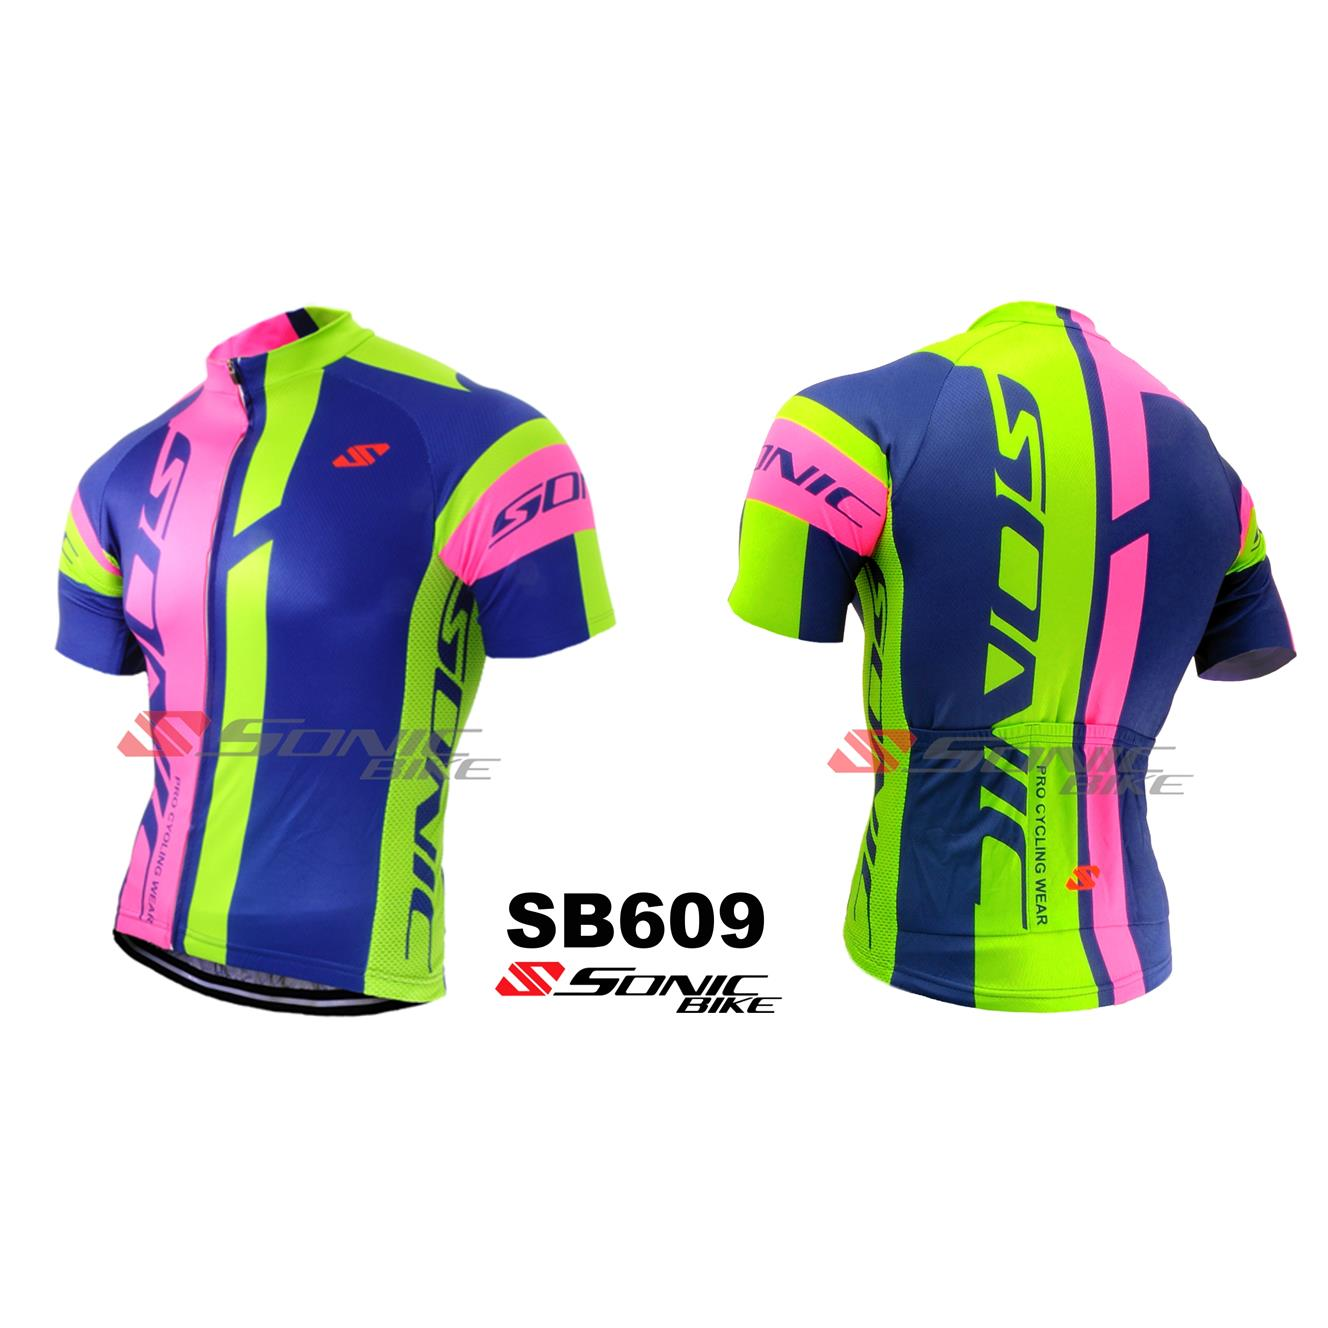 Sonic Design Cycling Jersey / Cycling Wear - SB609